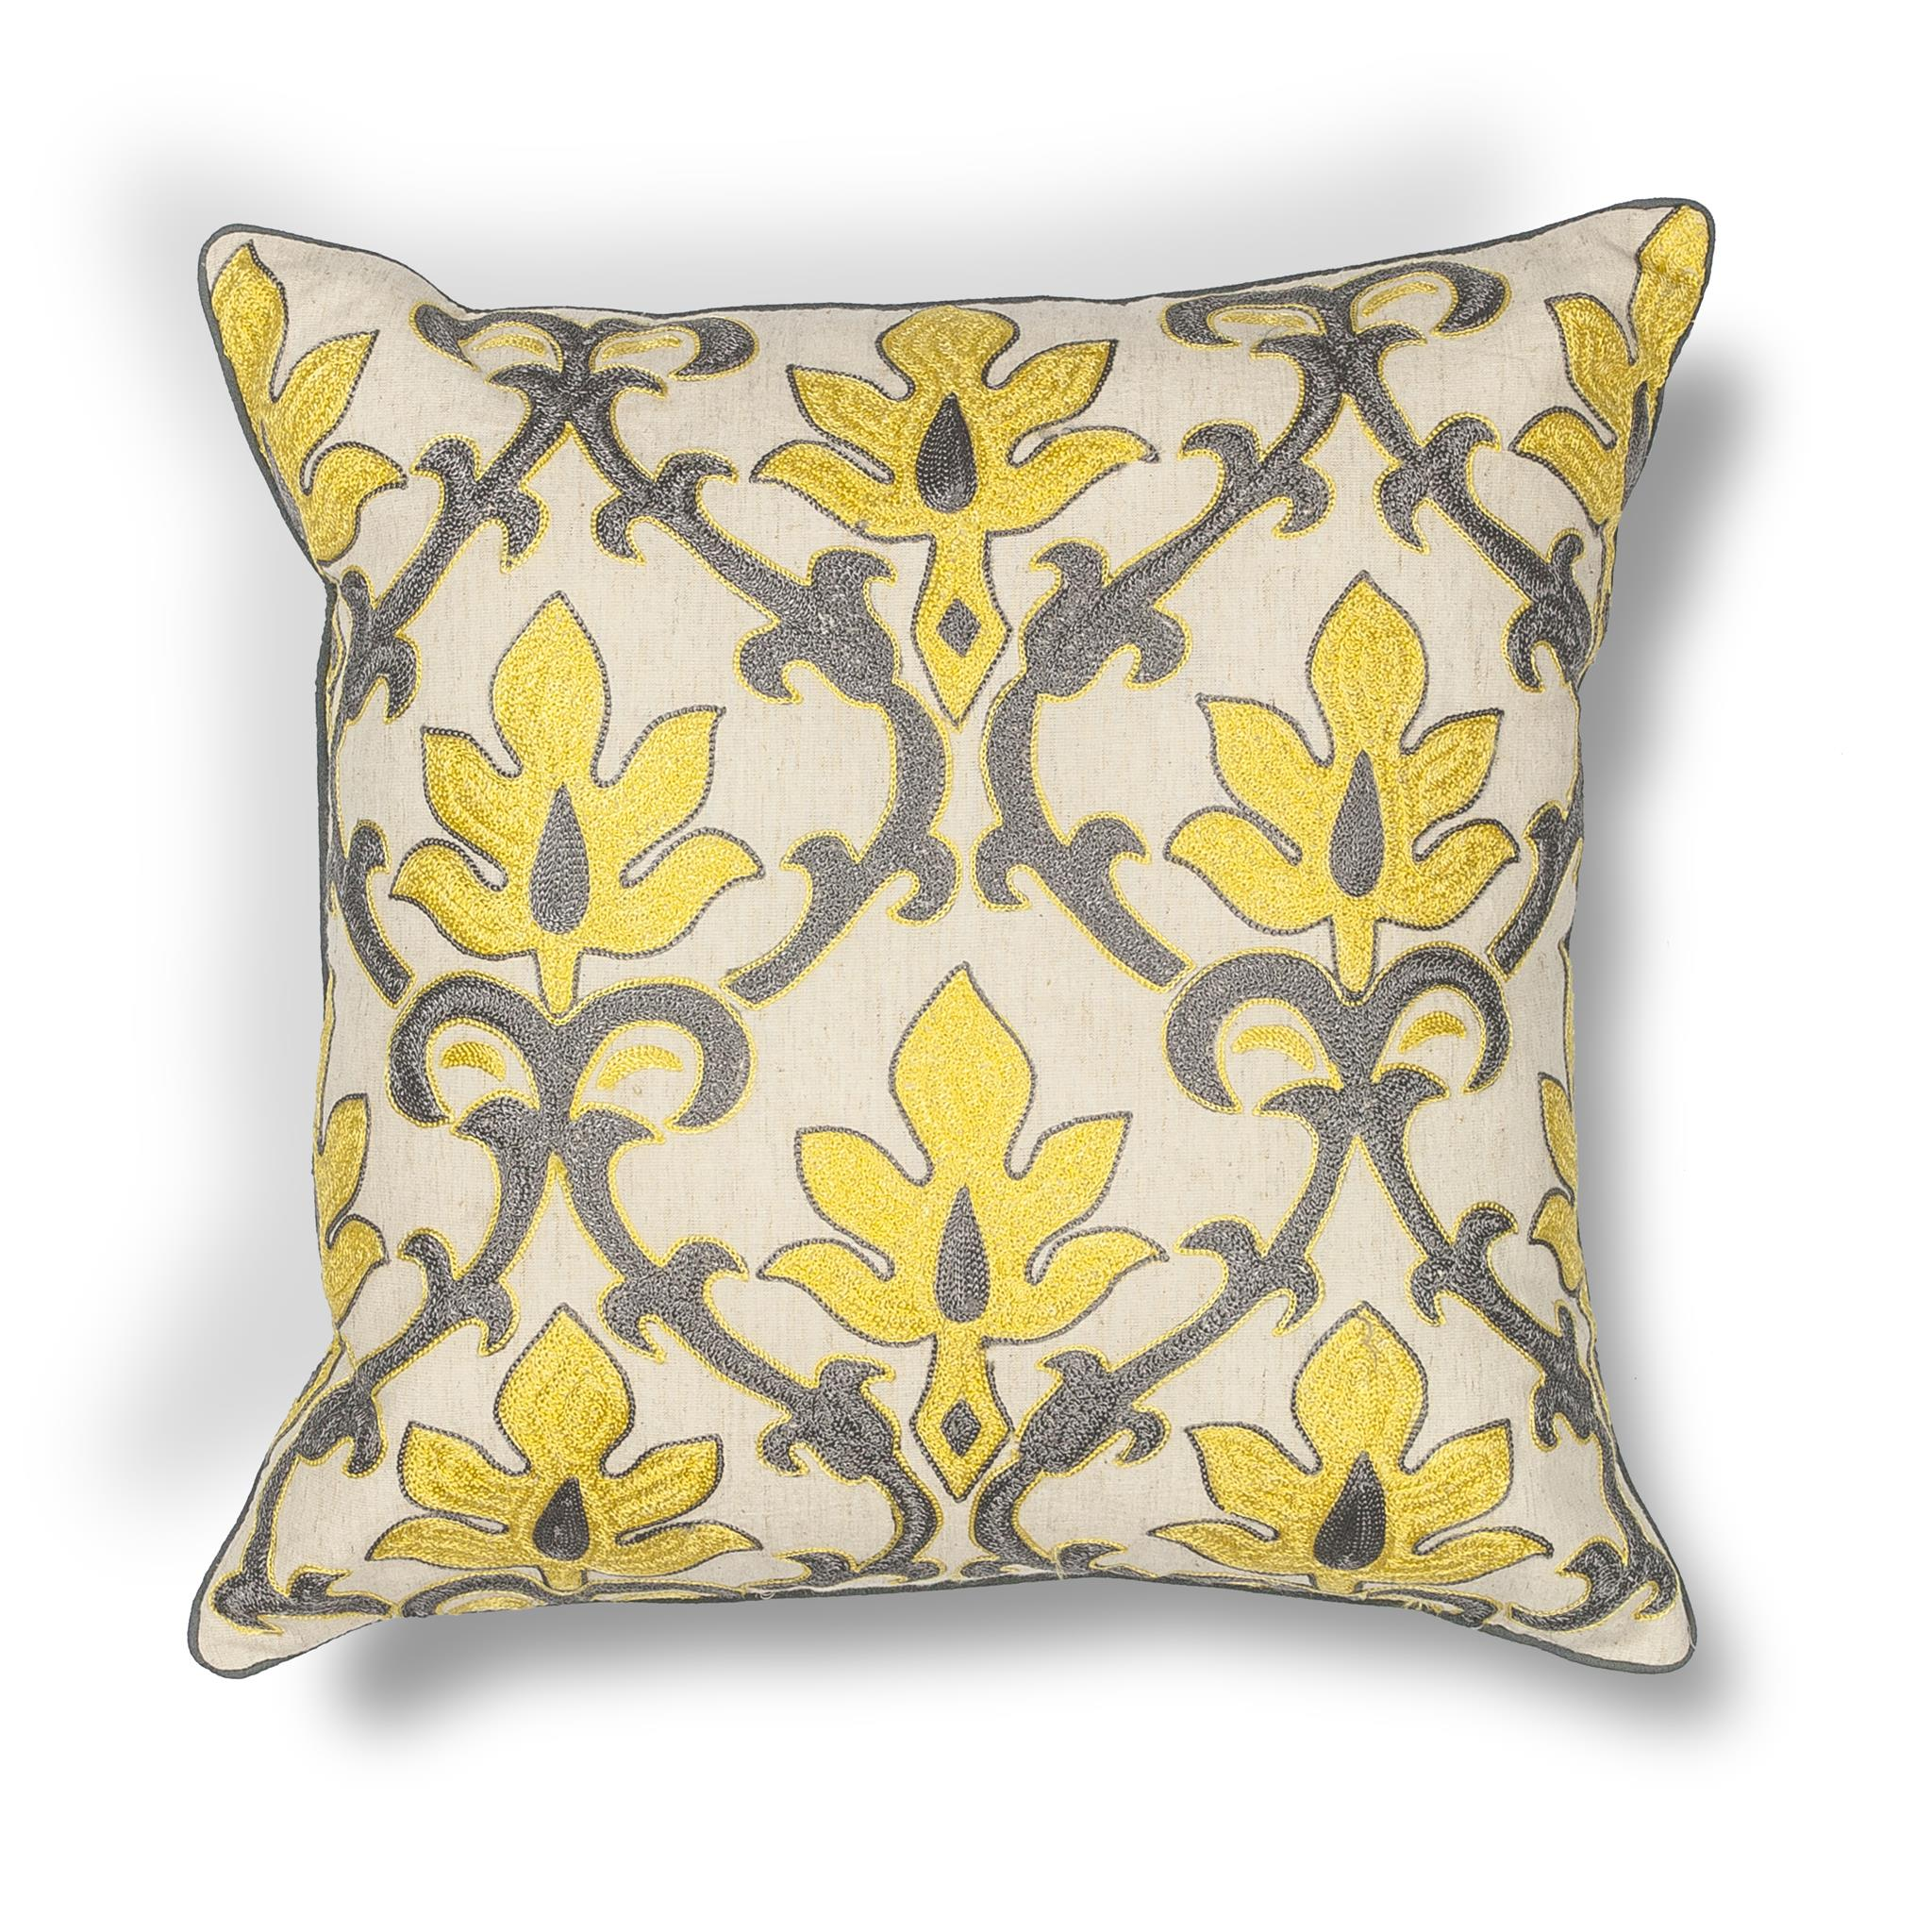 L196 Donny Osmond Home Yellow-Grey Damask Pillow